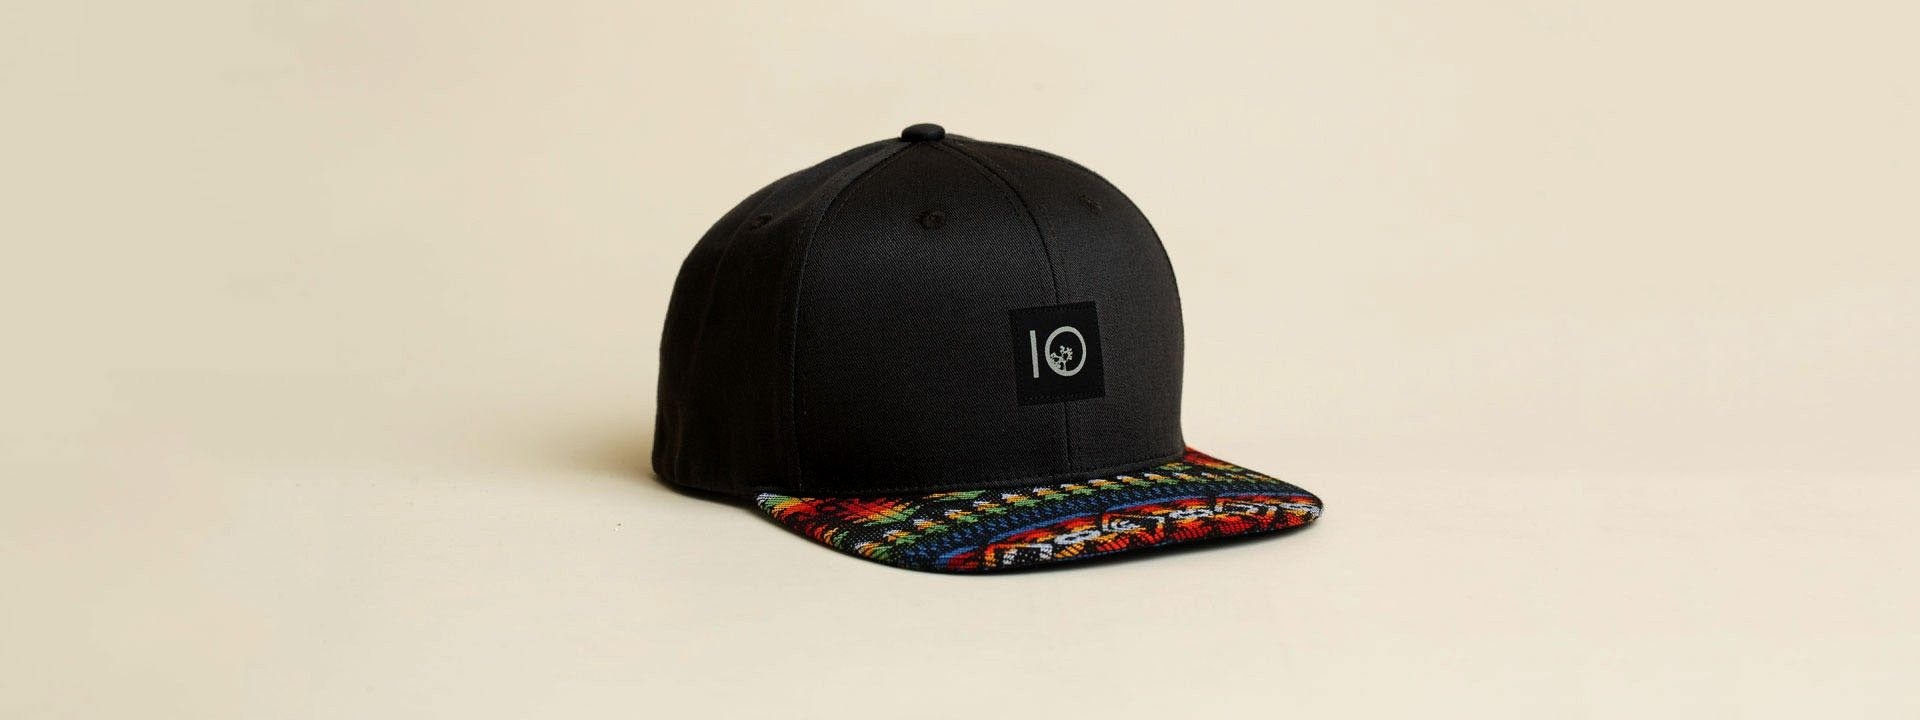 newest db5d1 51610  tentree Thicket Flex - Navy   Hats